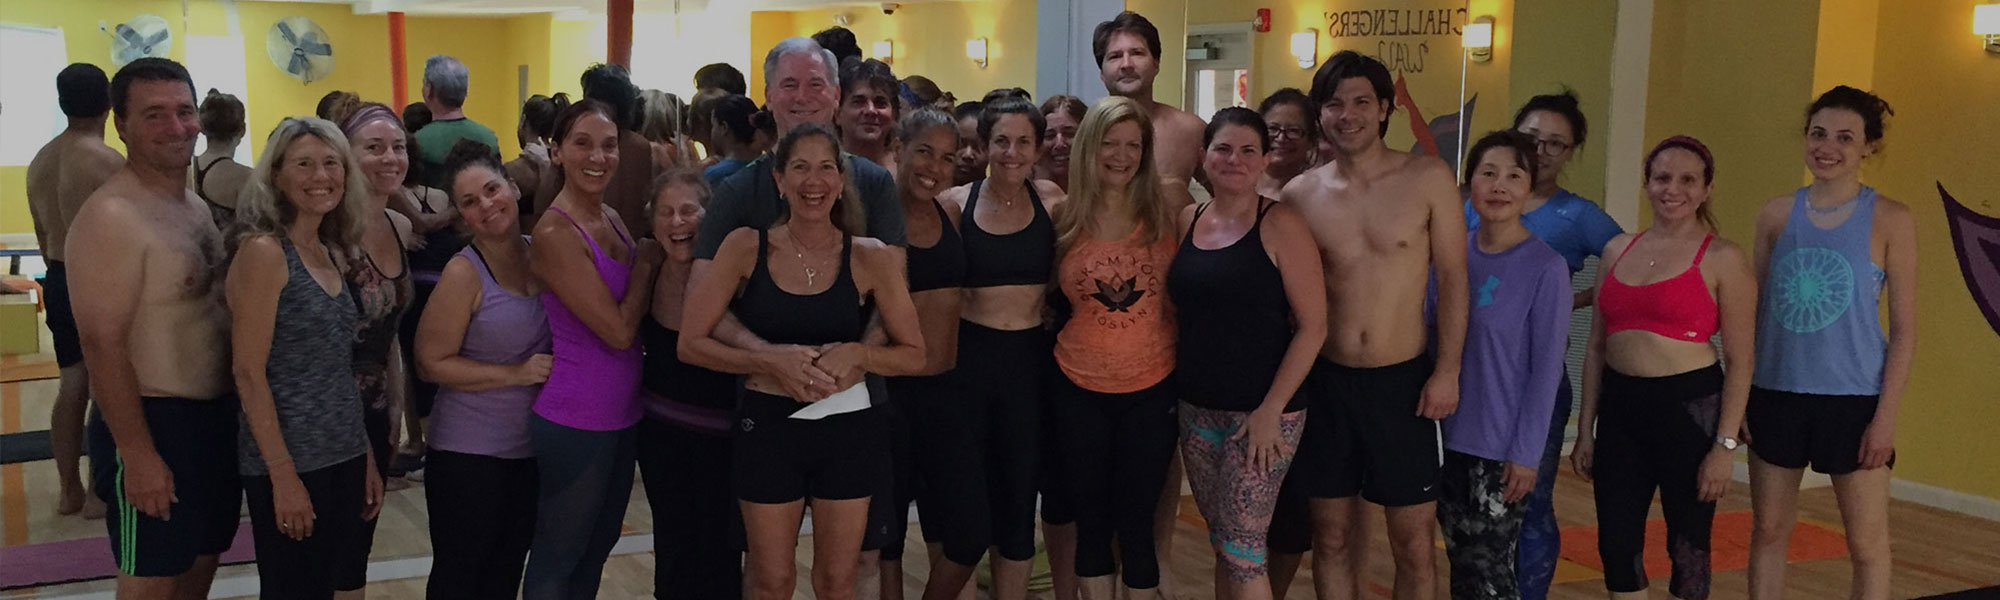 Students After a Yoga Class at Bikram Yoga Roslyn